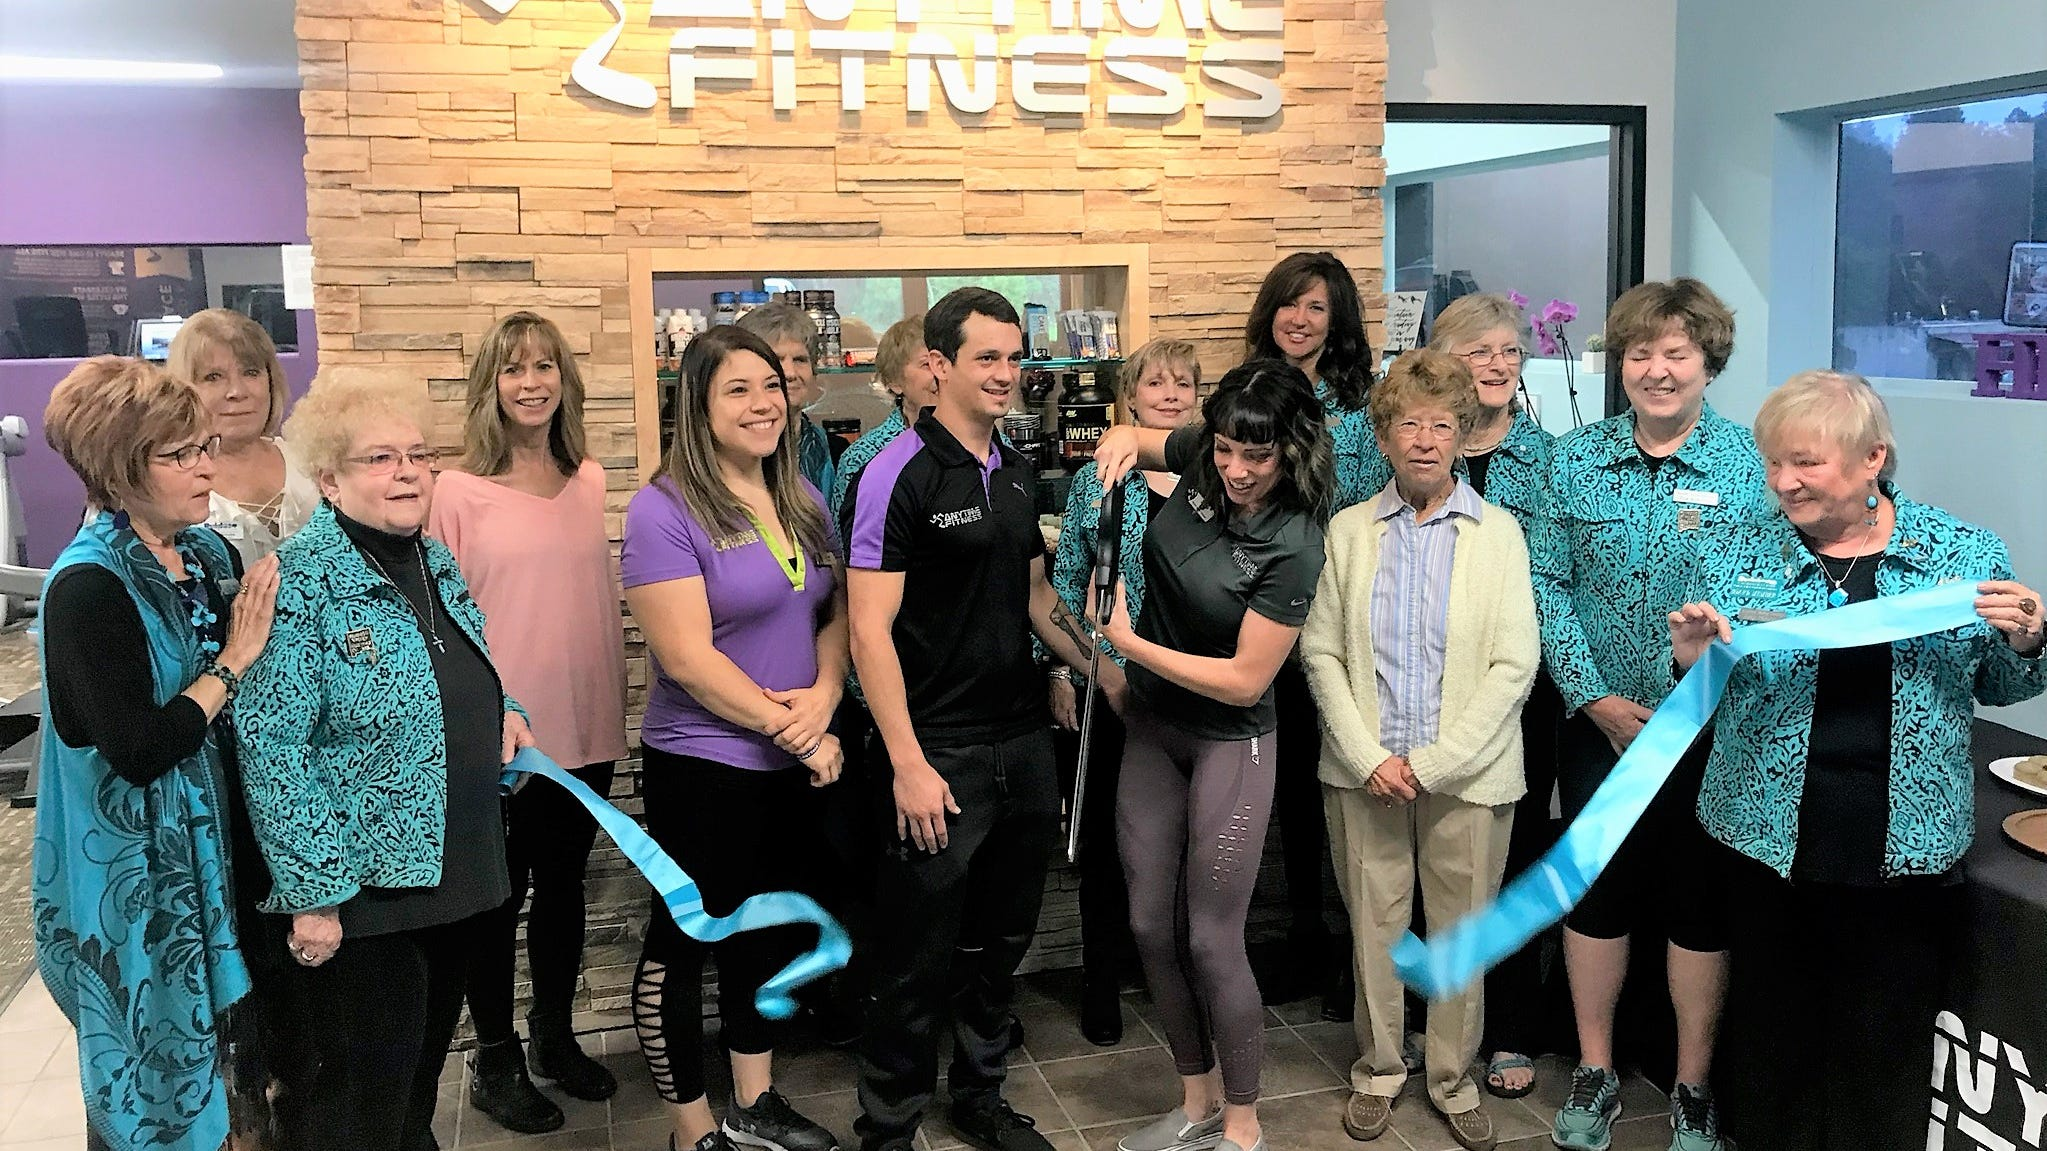 Chamber of Commerce and Valley greeters welcome Amytime Fitness to Ruidoso.